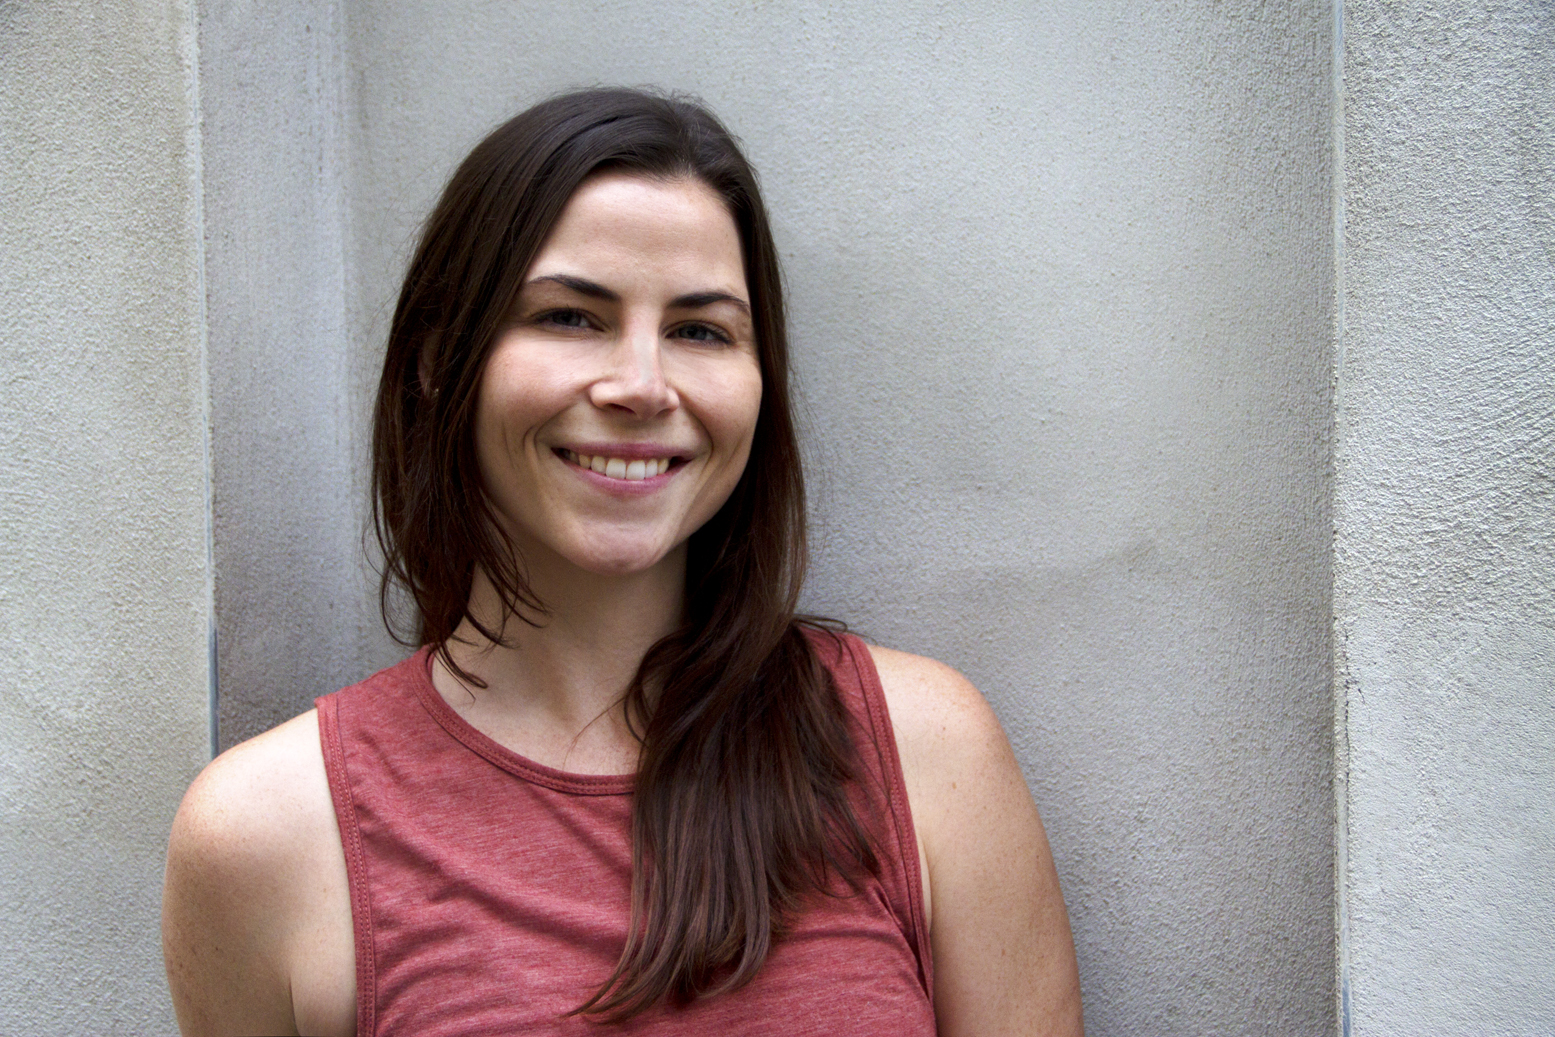 Sweetheart Kate R. - Kate is one of BECYCLE's beloved Yin Yoga and Meditation teachers.